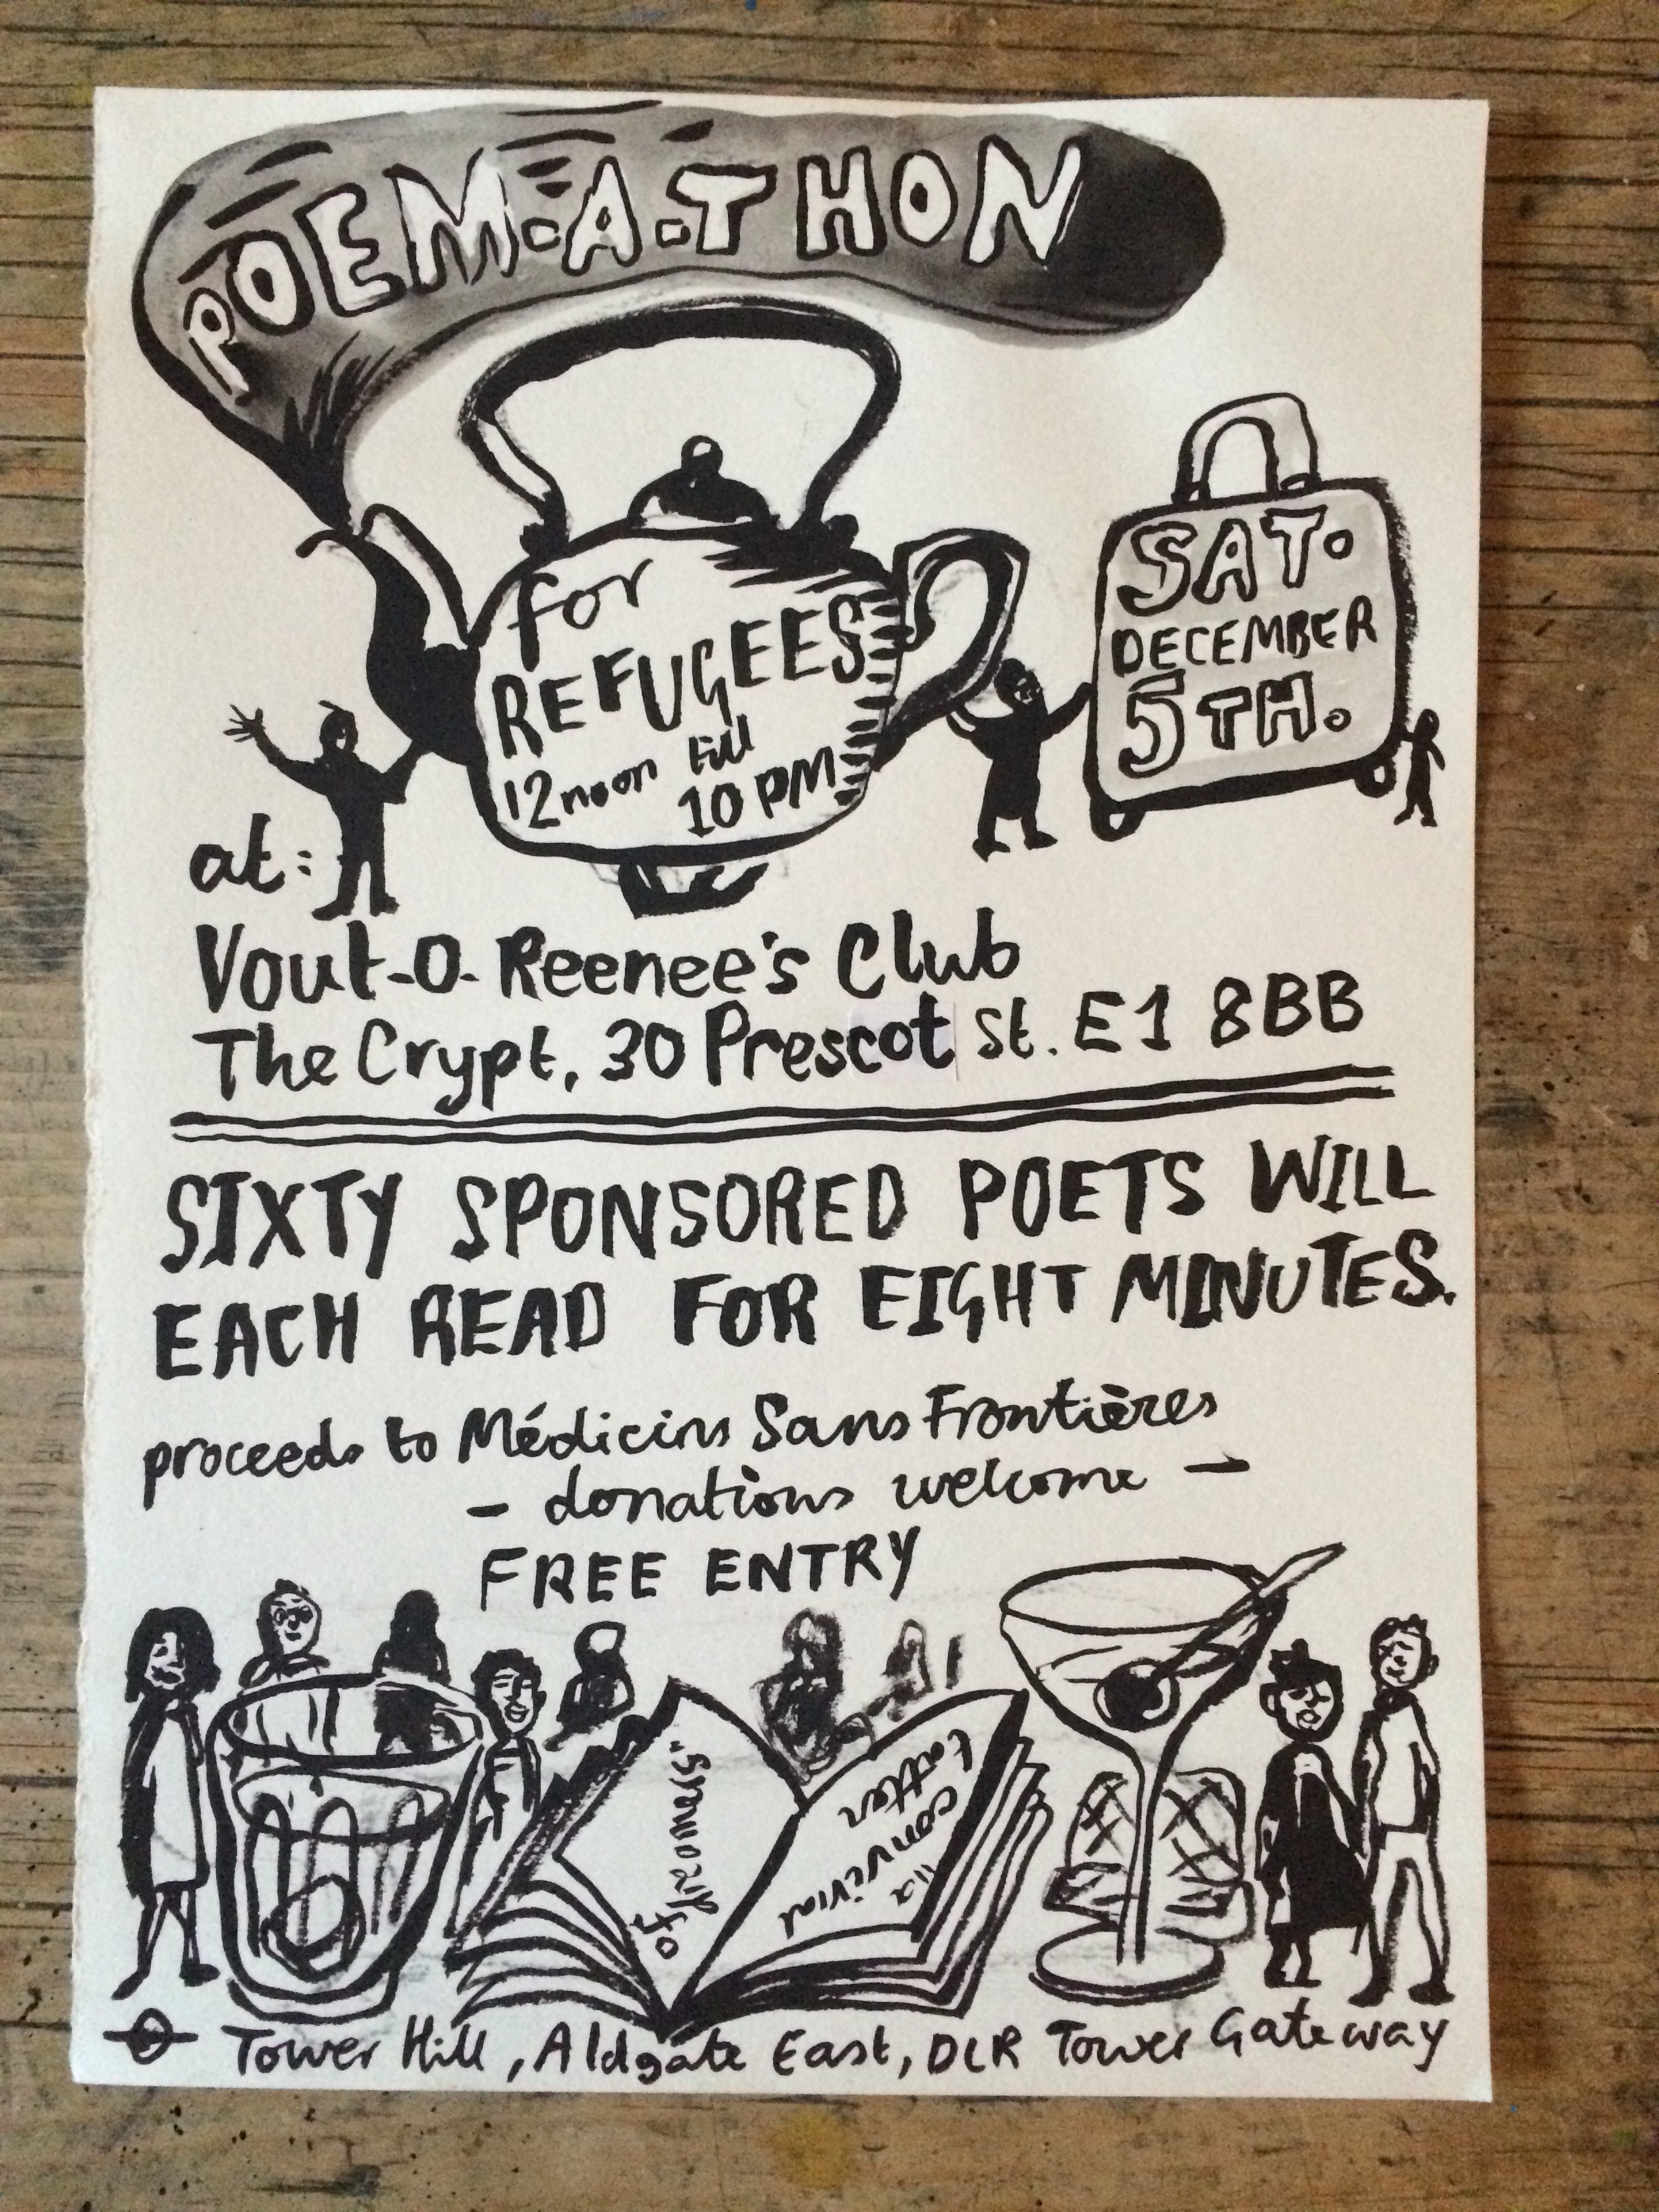 Poem-a-thon for refugees flyer | Courtesy of Vout-o-Reenee's Club